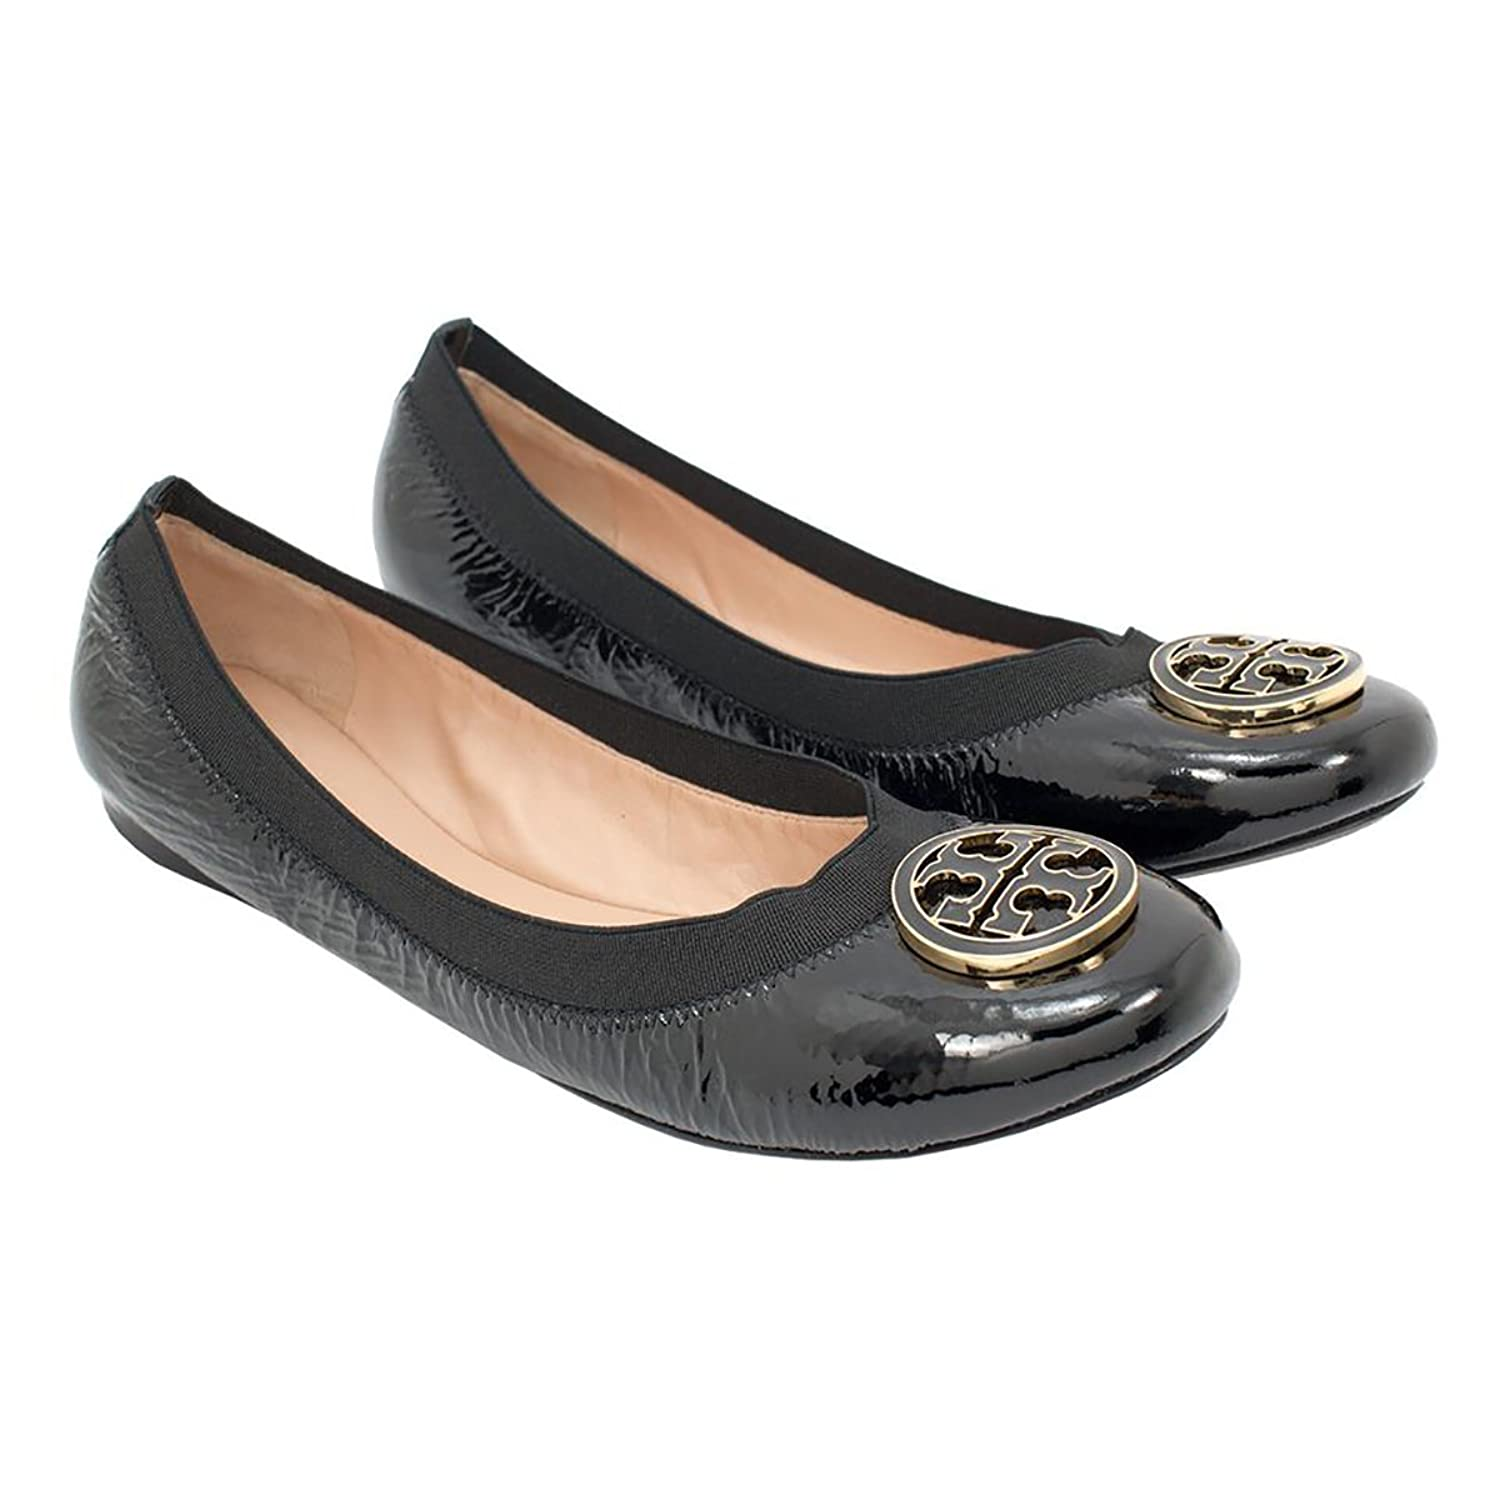 Tory Burch Shoes Flats Ballet Caroline Leather Elastic